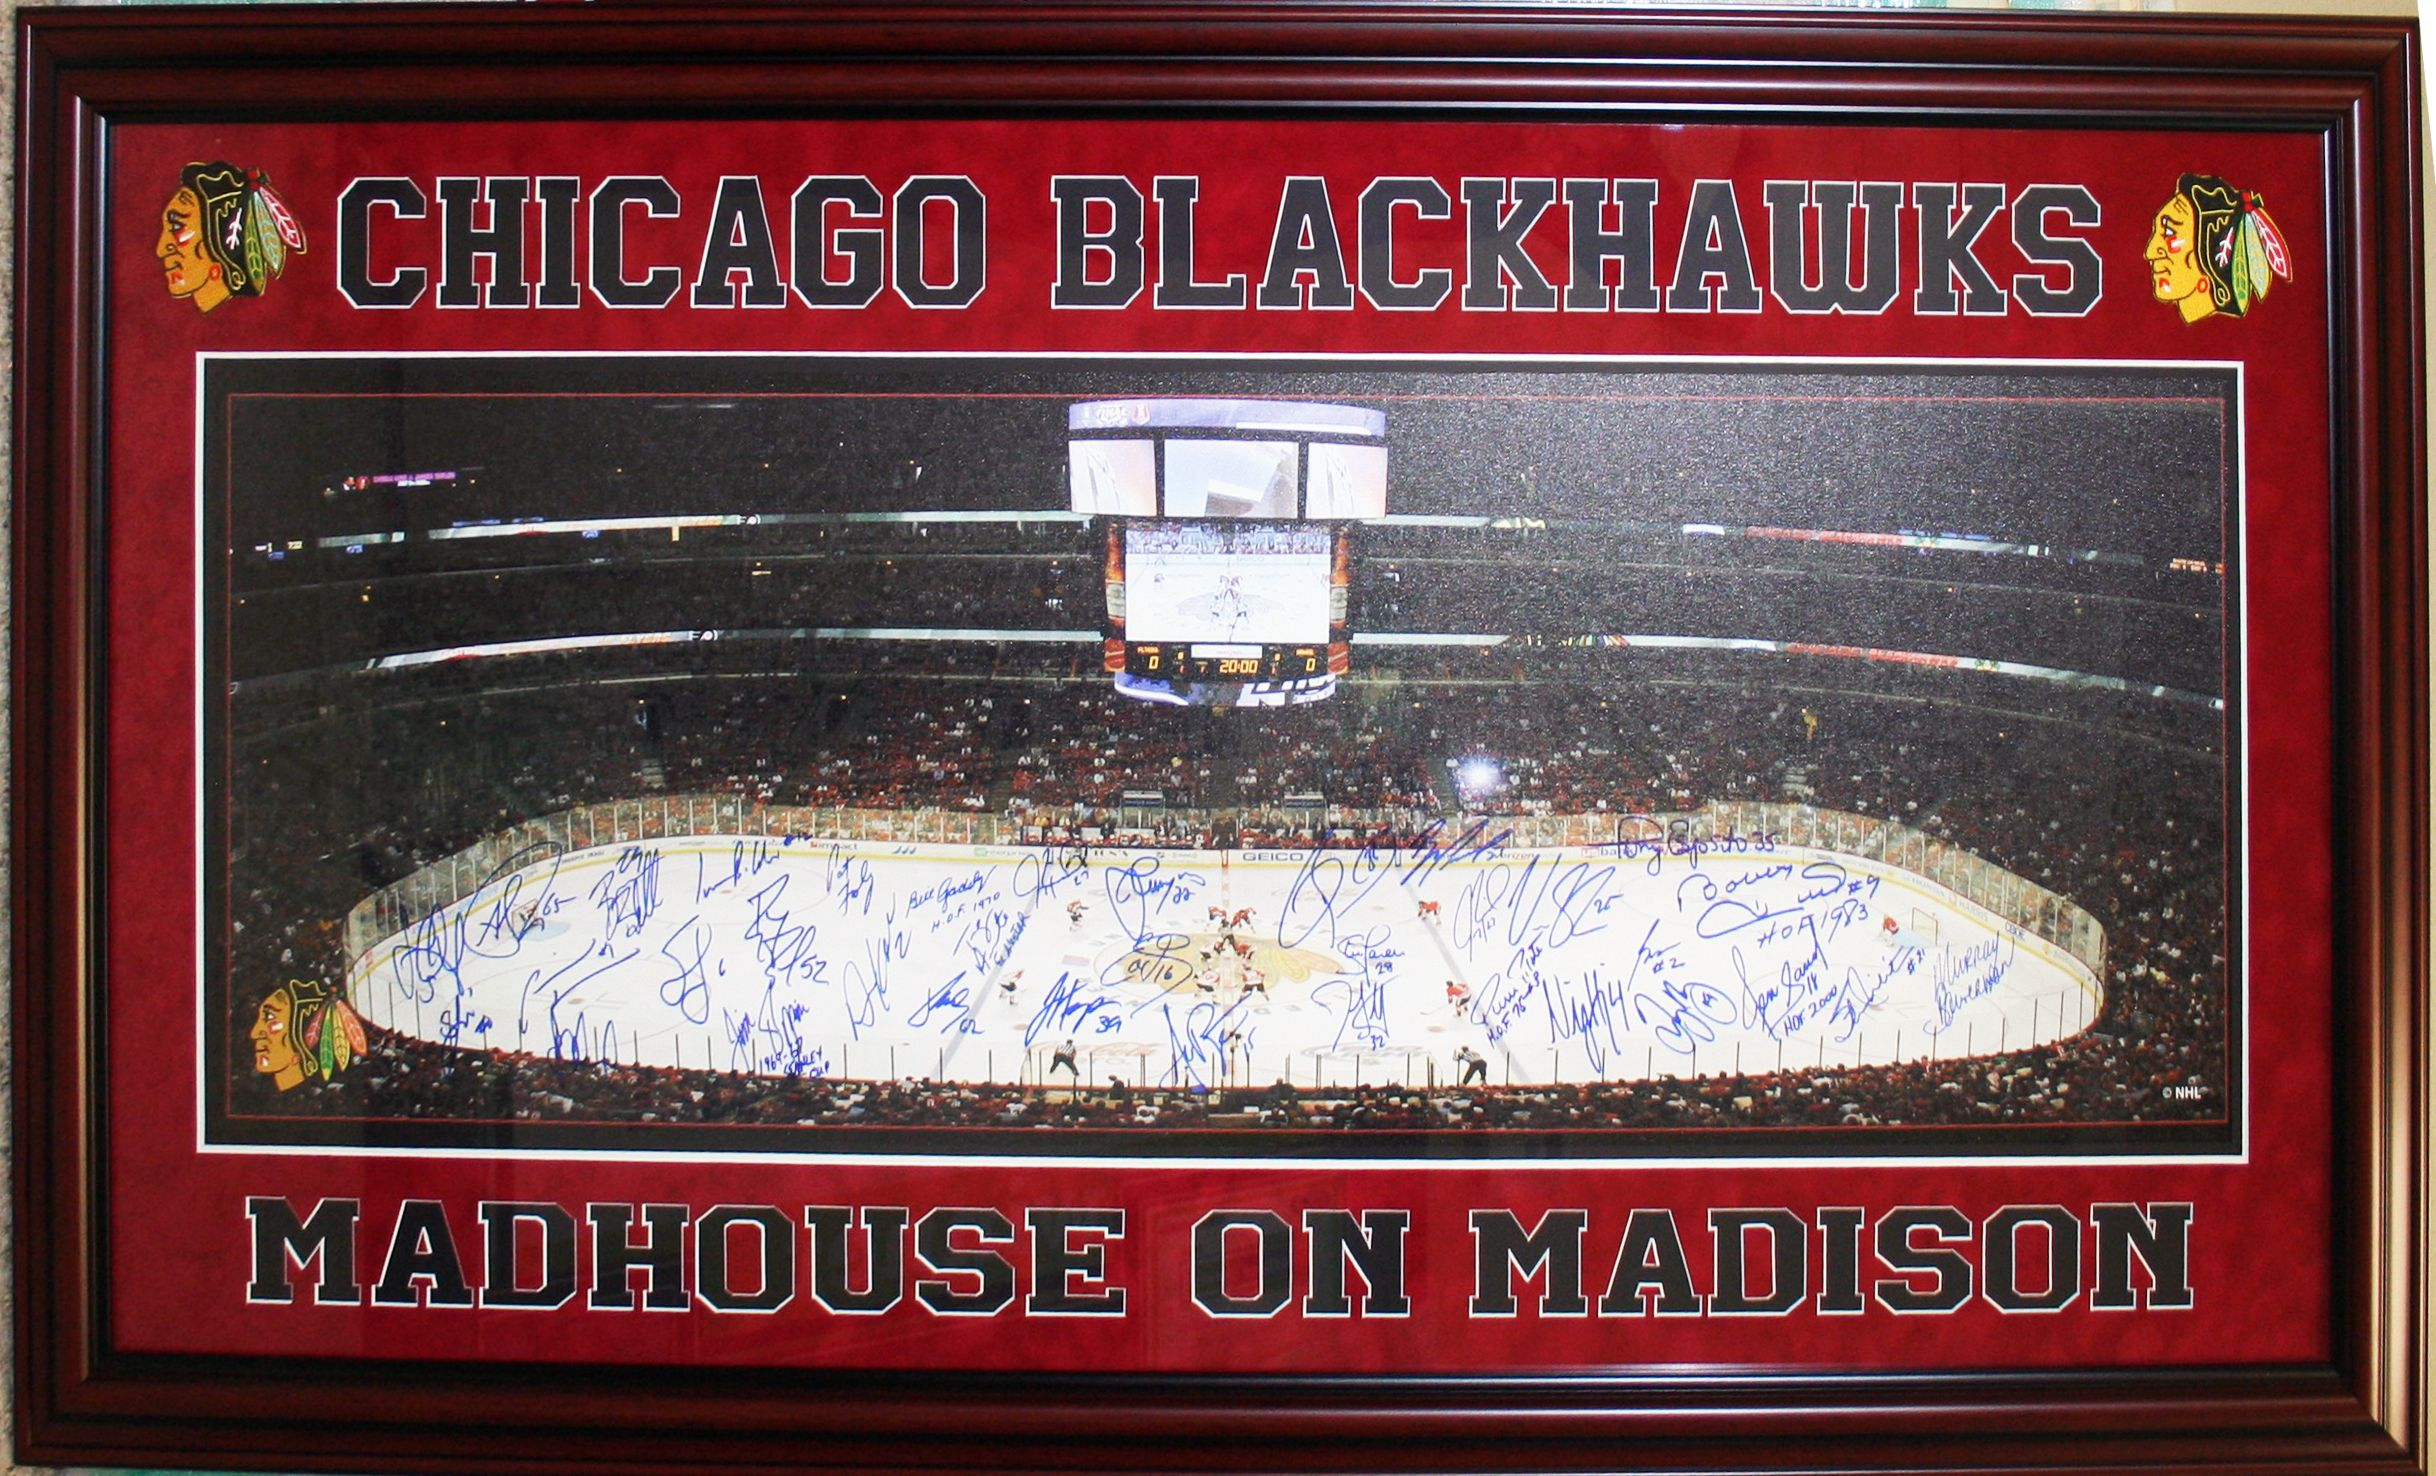 Chicago Blackhawks Madhouse on Madison autographed panoramic framed ...